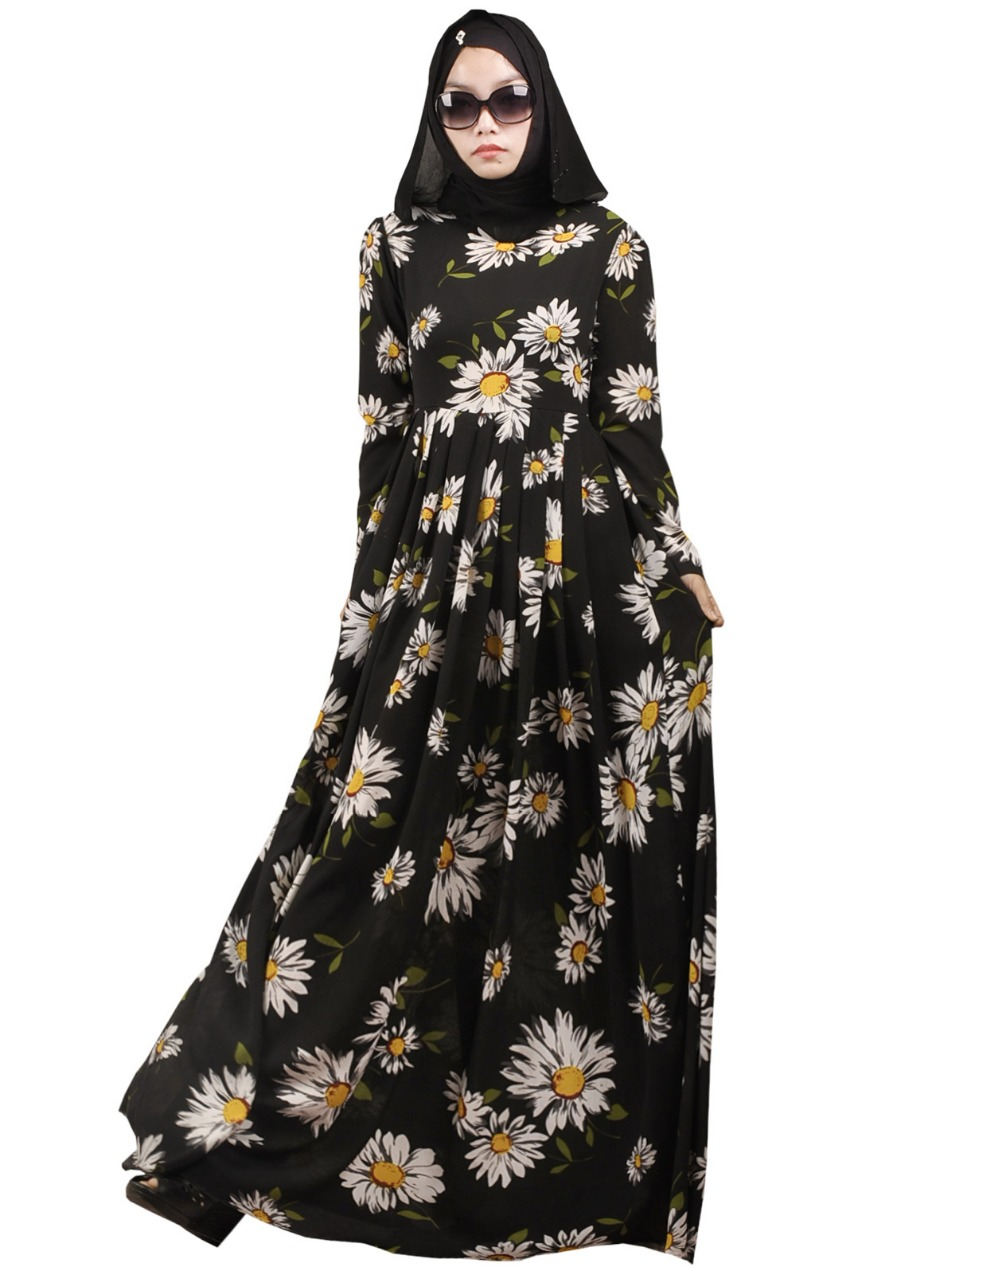 dubai design  High Quality abayas printing chiffon muslim caftan islamic dress turkish traditional dress